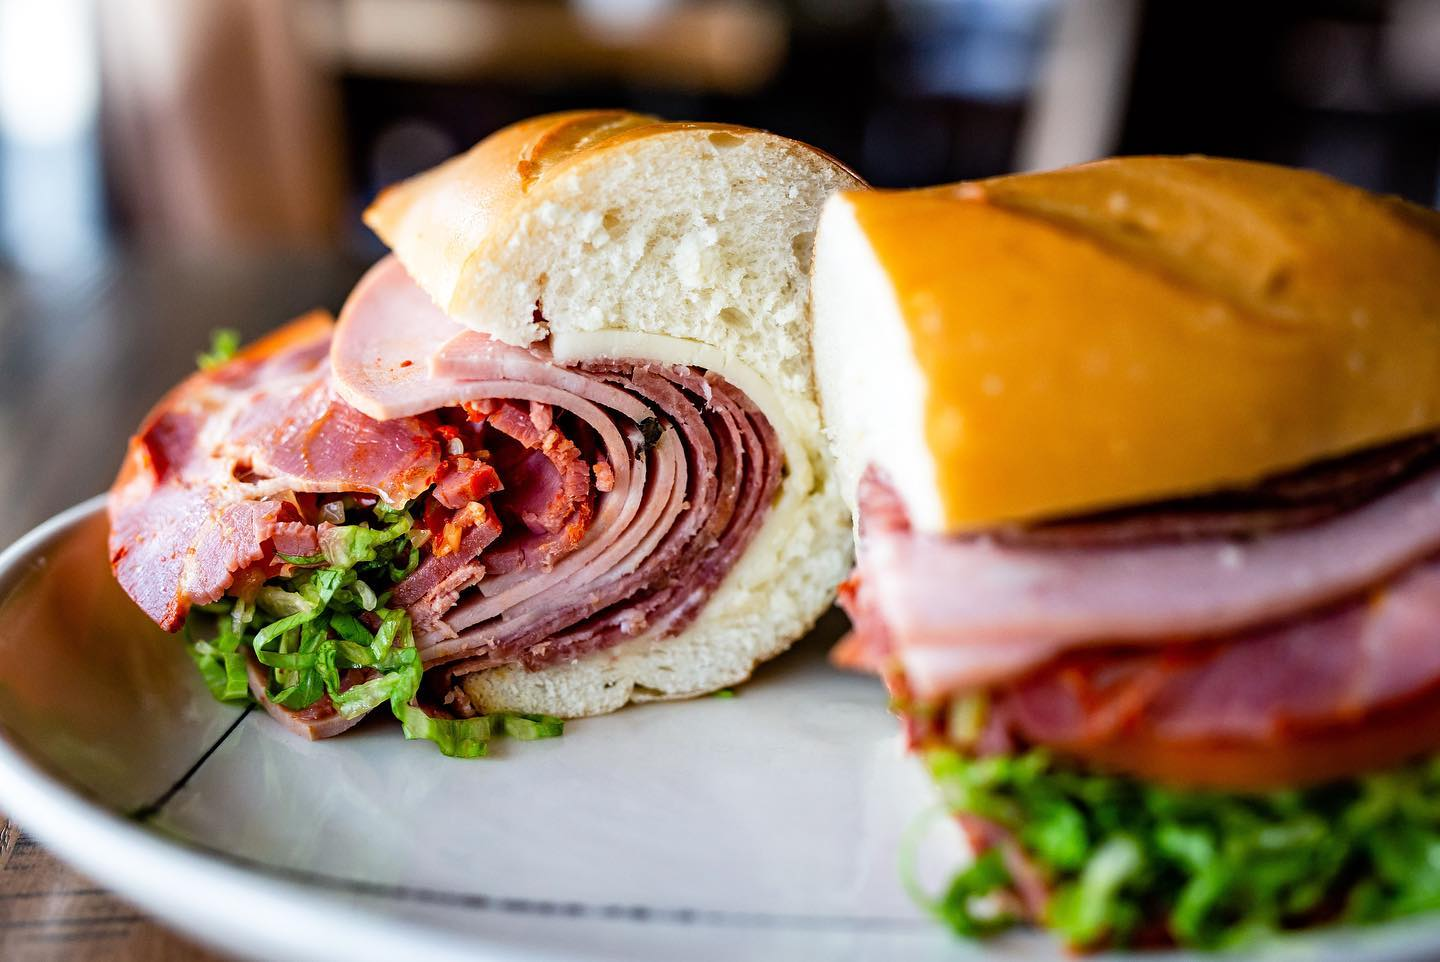 a close up of an Italian sandwich with folds of mortadella, salami, provolone, lettuce, tomato, onion, pepper relish and mayo on a hoagie.